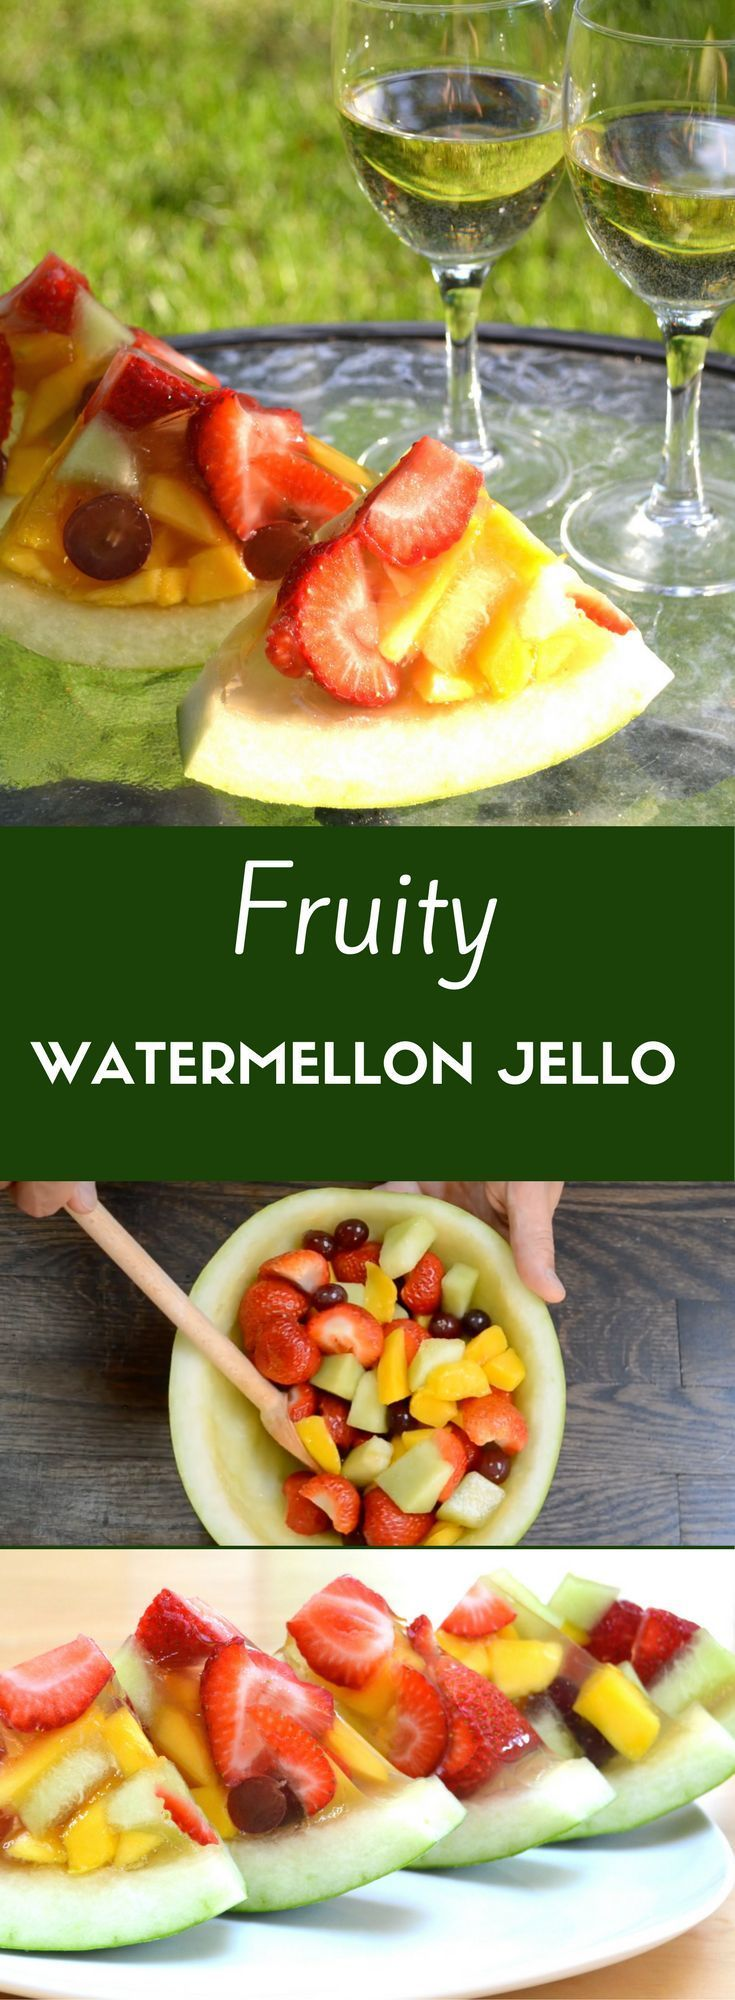 See how to make Fruity Watermelon Jello, our original recipe for fresh fruits set inside a half watermelon. This dessert is perfectly healthy with no added sugar and beautiful too. The video below has already had more than 3 million views on Facebook. We prefer this to boring watermelon jello shots any day. Serve it at your next party with some white wine!